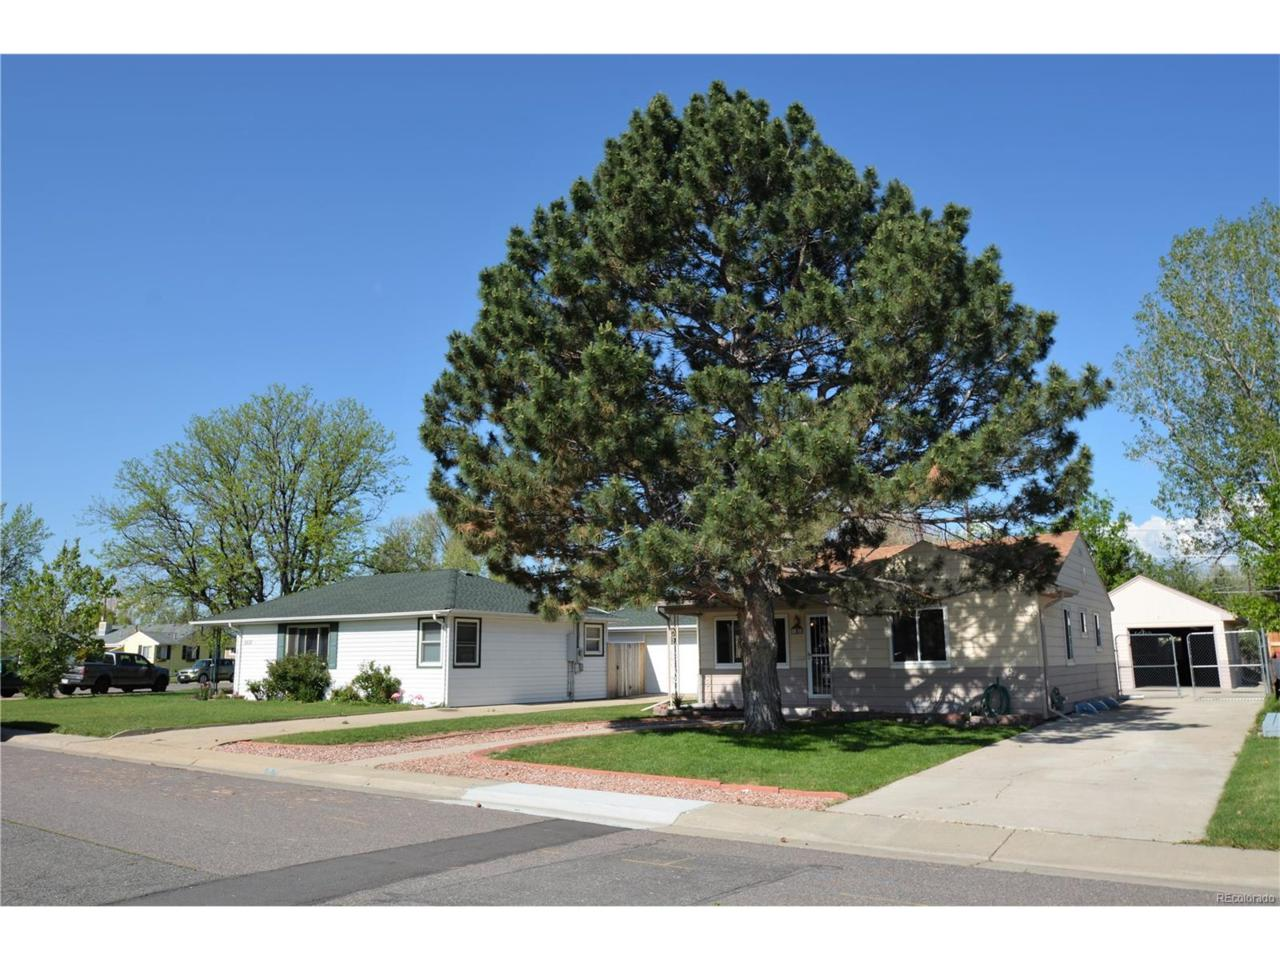 5545 Brentwood Street, Arvada, CO 80002 (MLS #6162125) :: 8z Real Estate